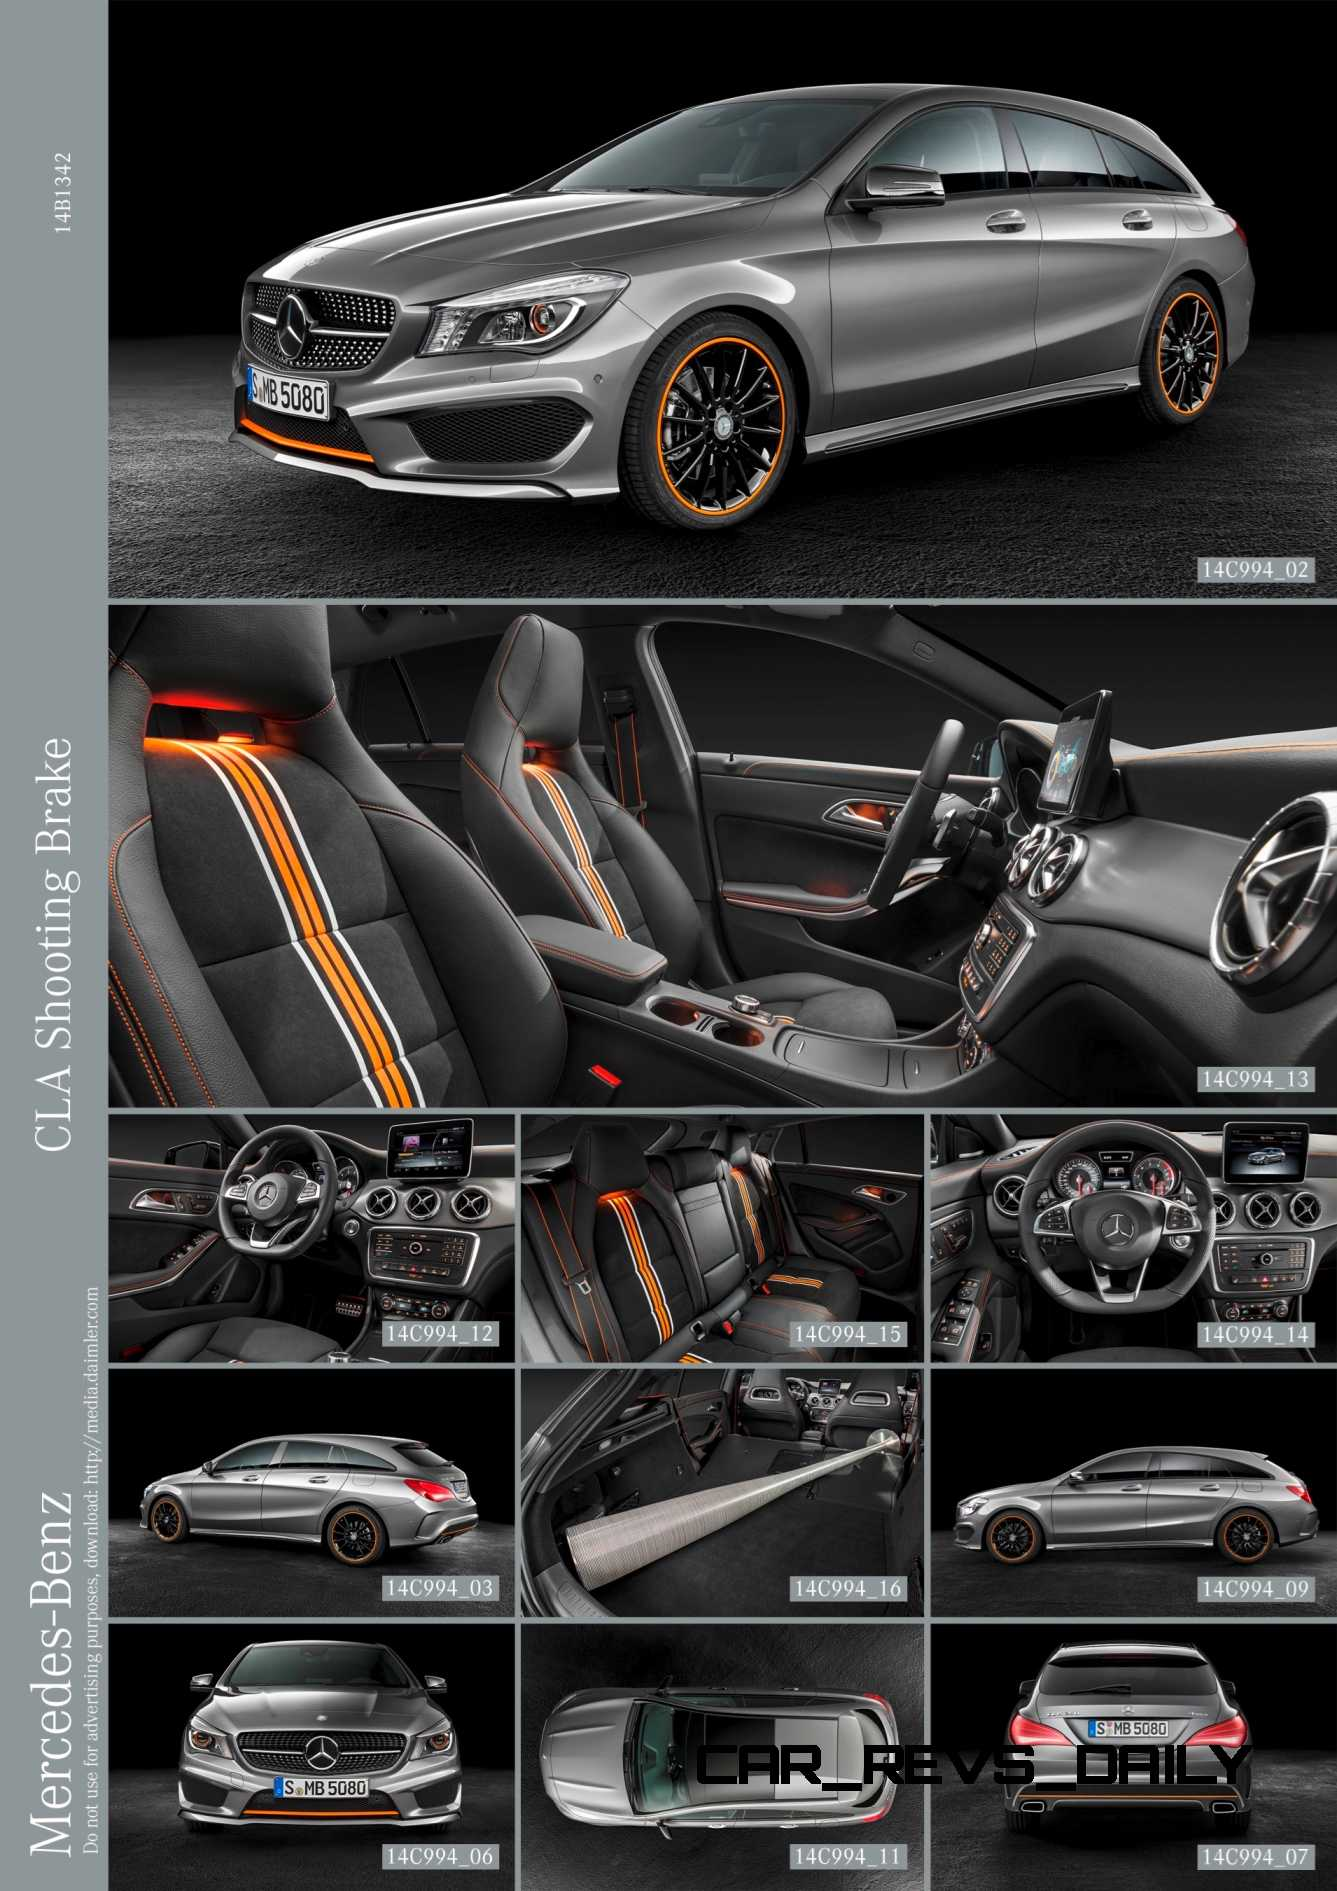 Mercedes Cla 250 >> 2016 Mercedes-Benz CLA250 Shooting Brake Revealed for Euro ...